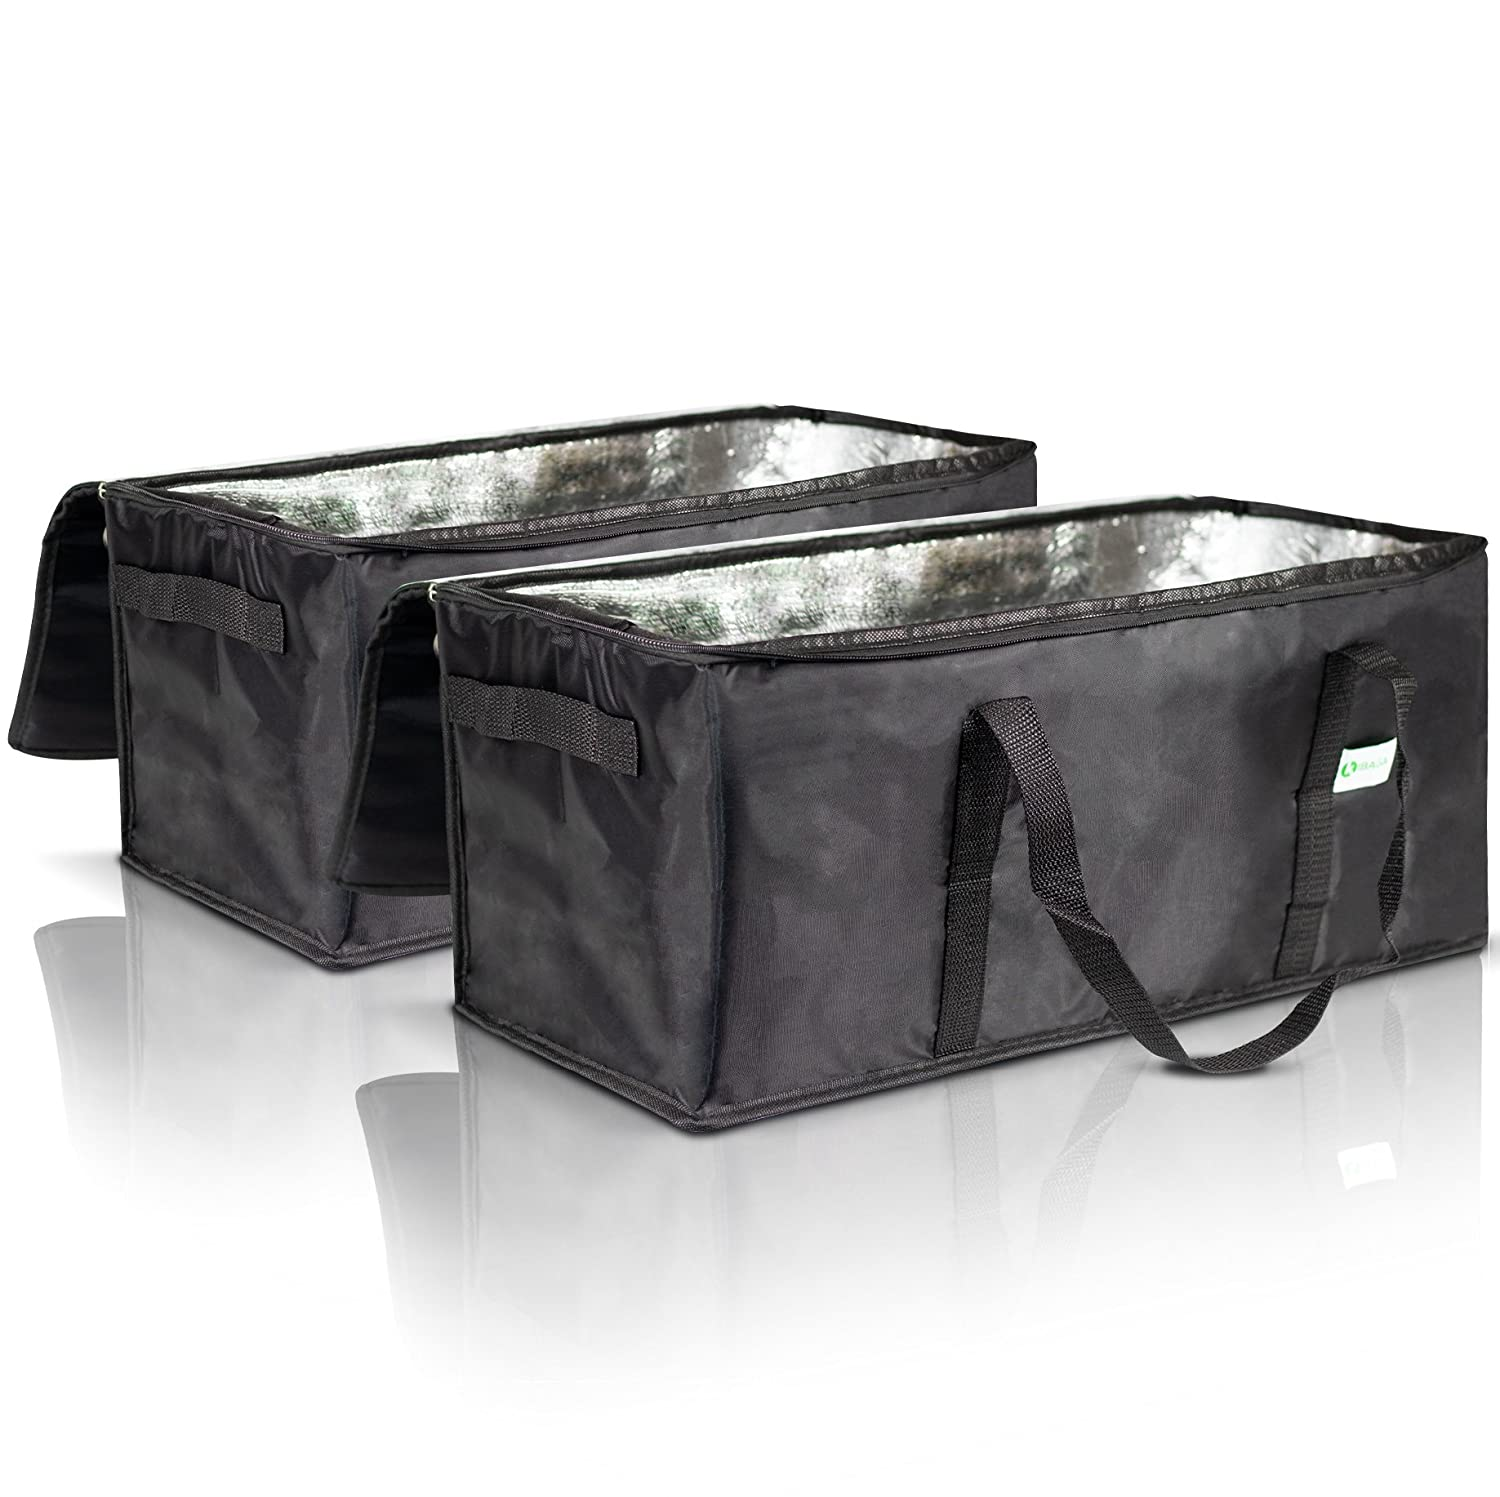 "Commercial Insulated Food Delivery Bags Set of 2-22"" x 10"" x 10"" Waterproof Delivery Bags for Hot Food Delivery - Premium Food Warmer Bags for Uber Eats and Doordash Food Delivery"